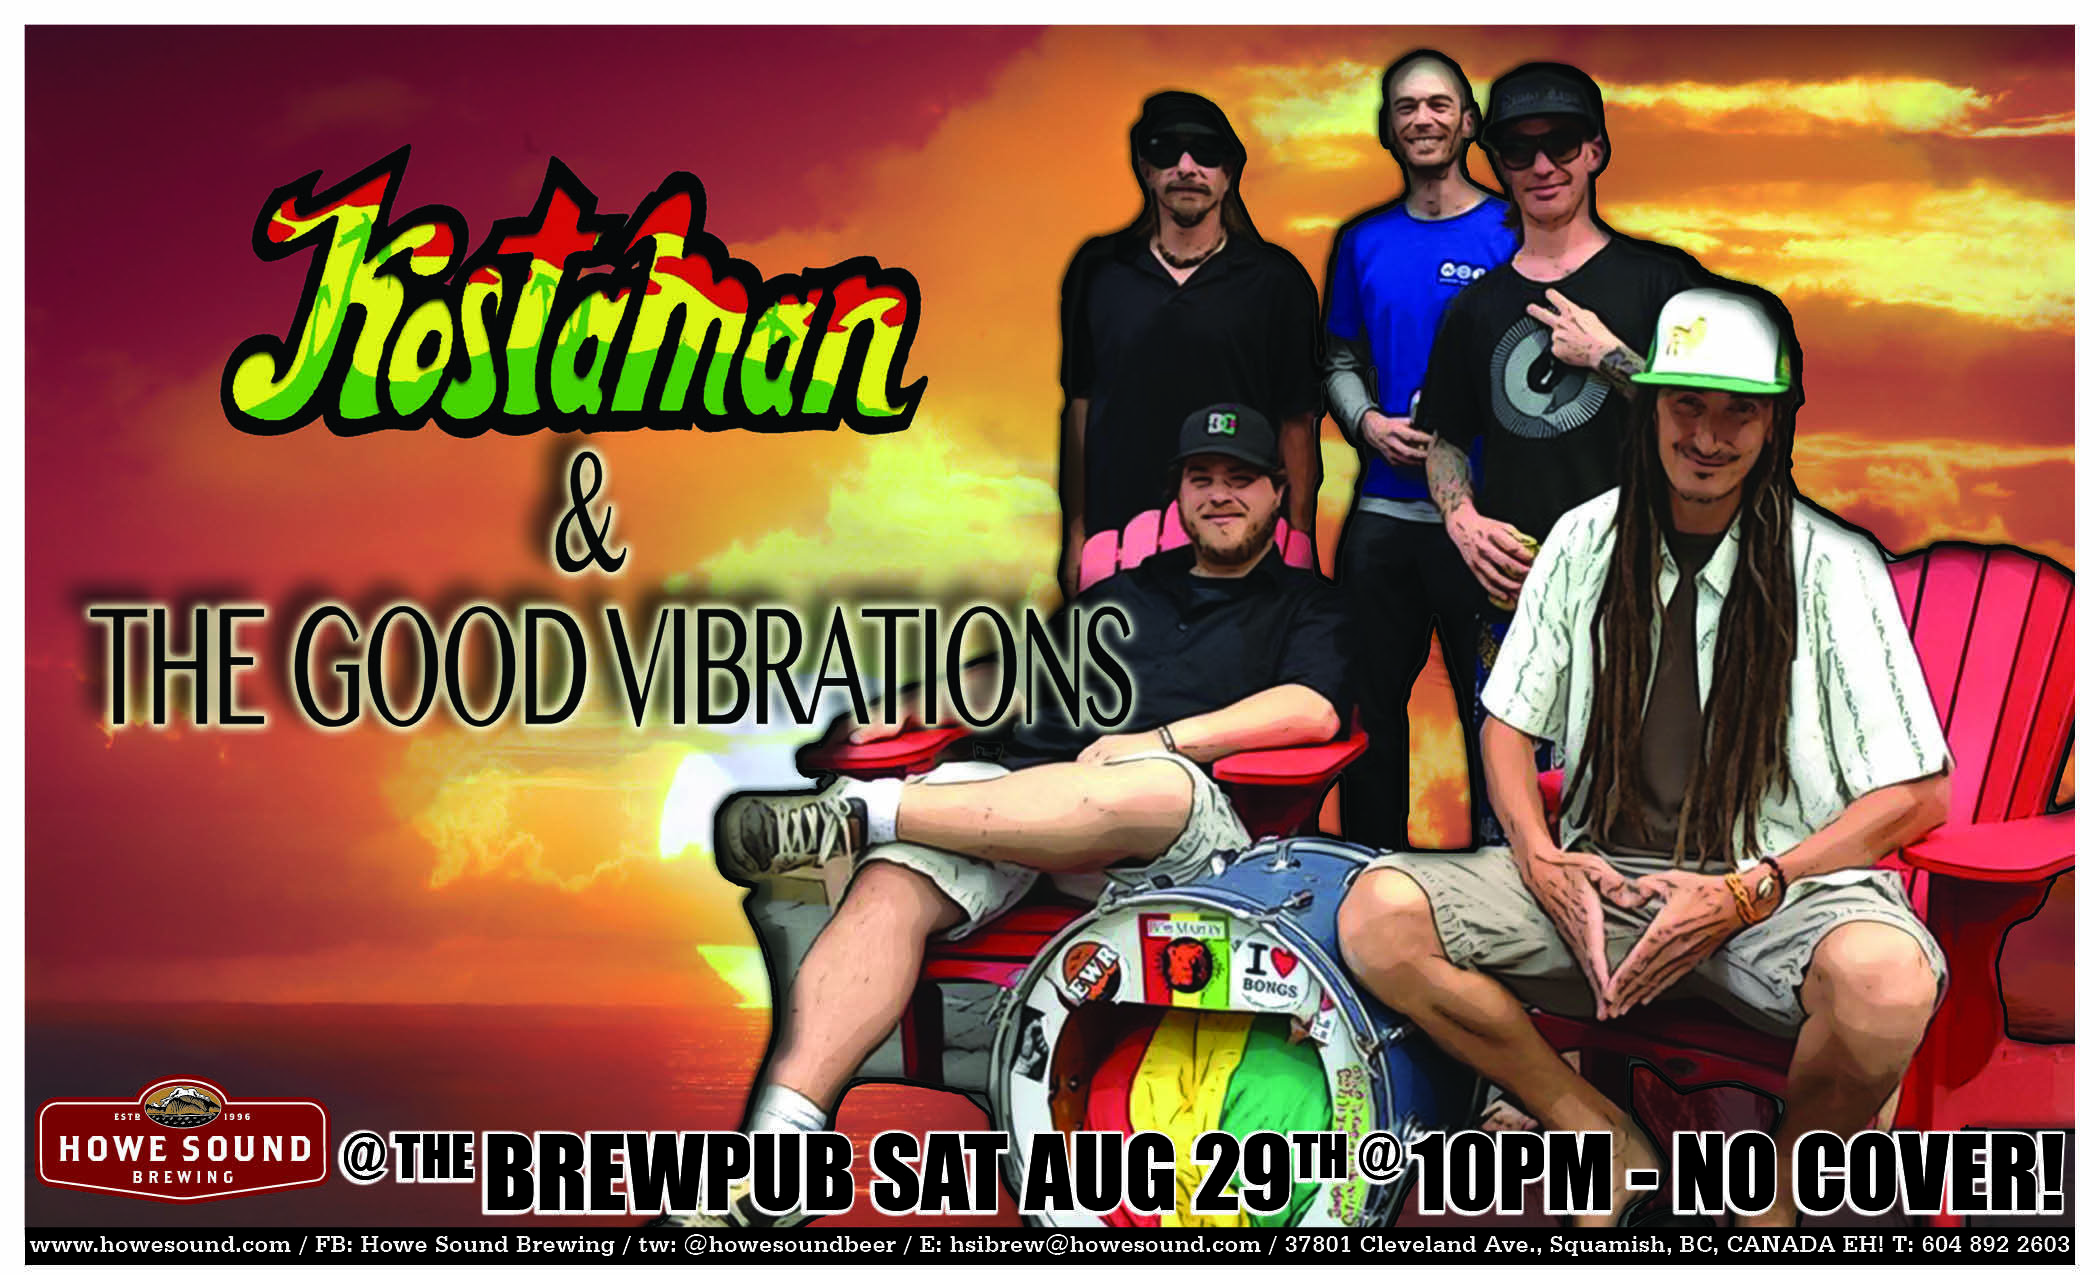 Saturday, August 29 at 10 pm - Kostaman & The Good Vibrations at Howe Sound Brew Pub